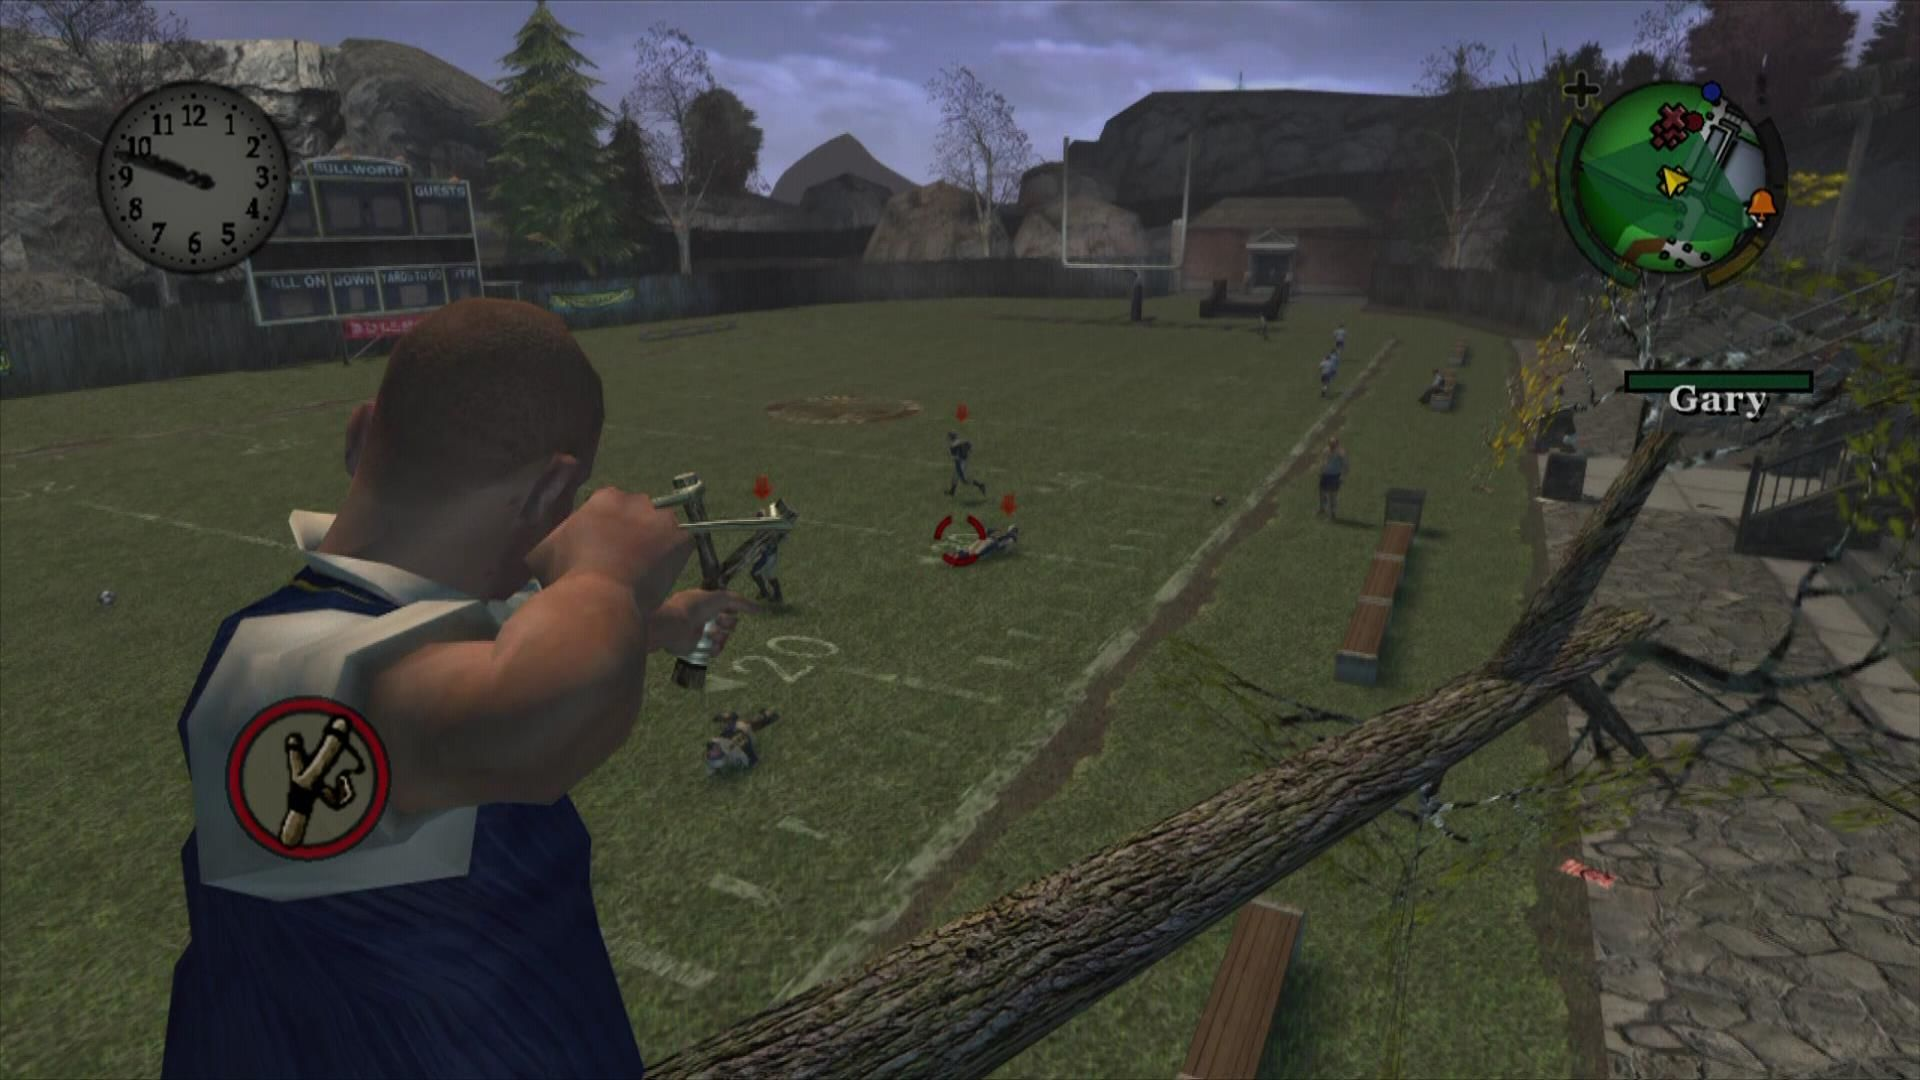 Bully: Scholarship Edition Xbox 360 Use the slingshot to harass some Jocks